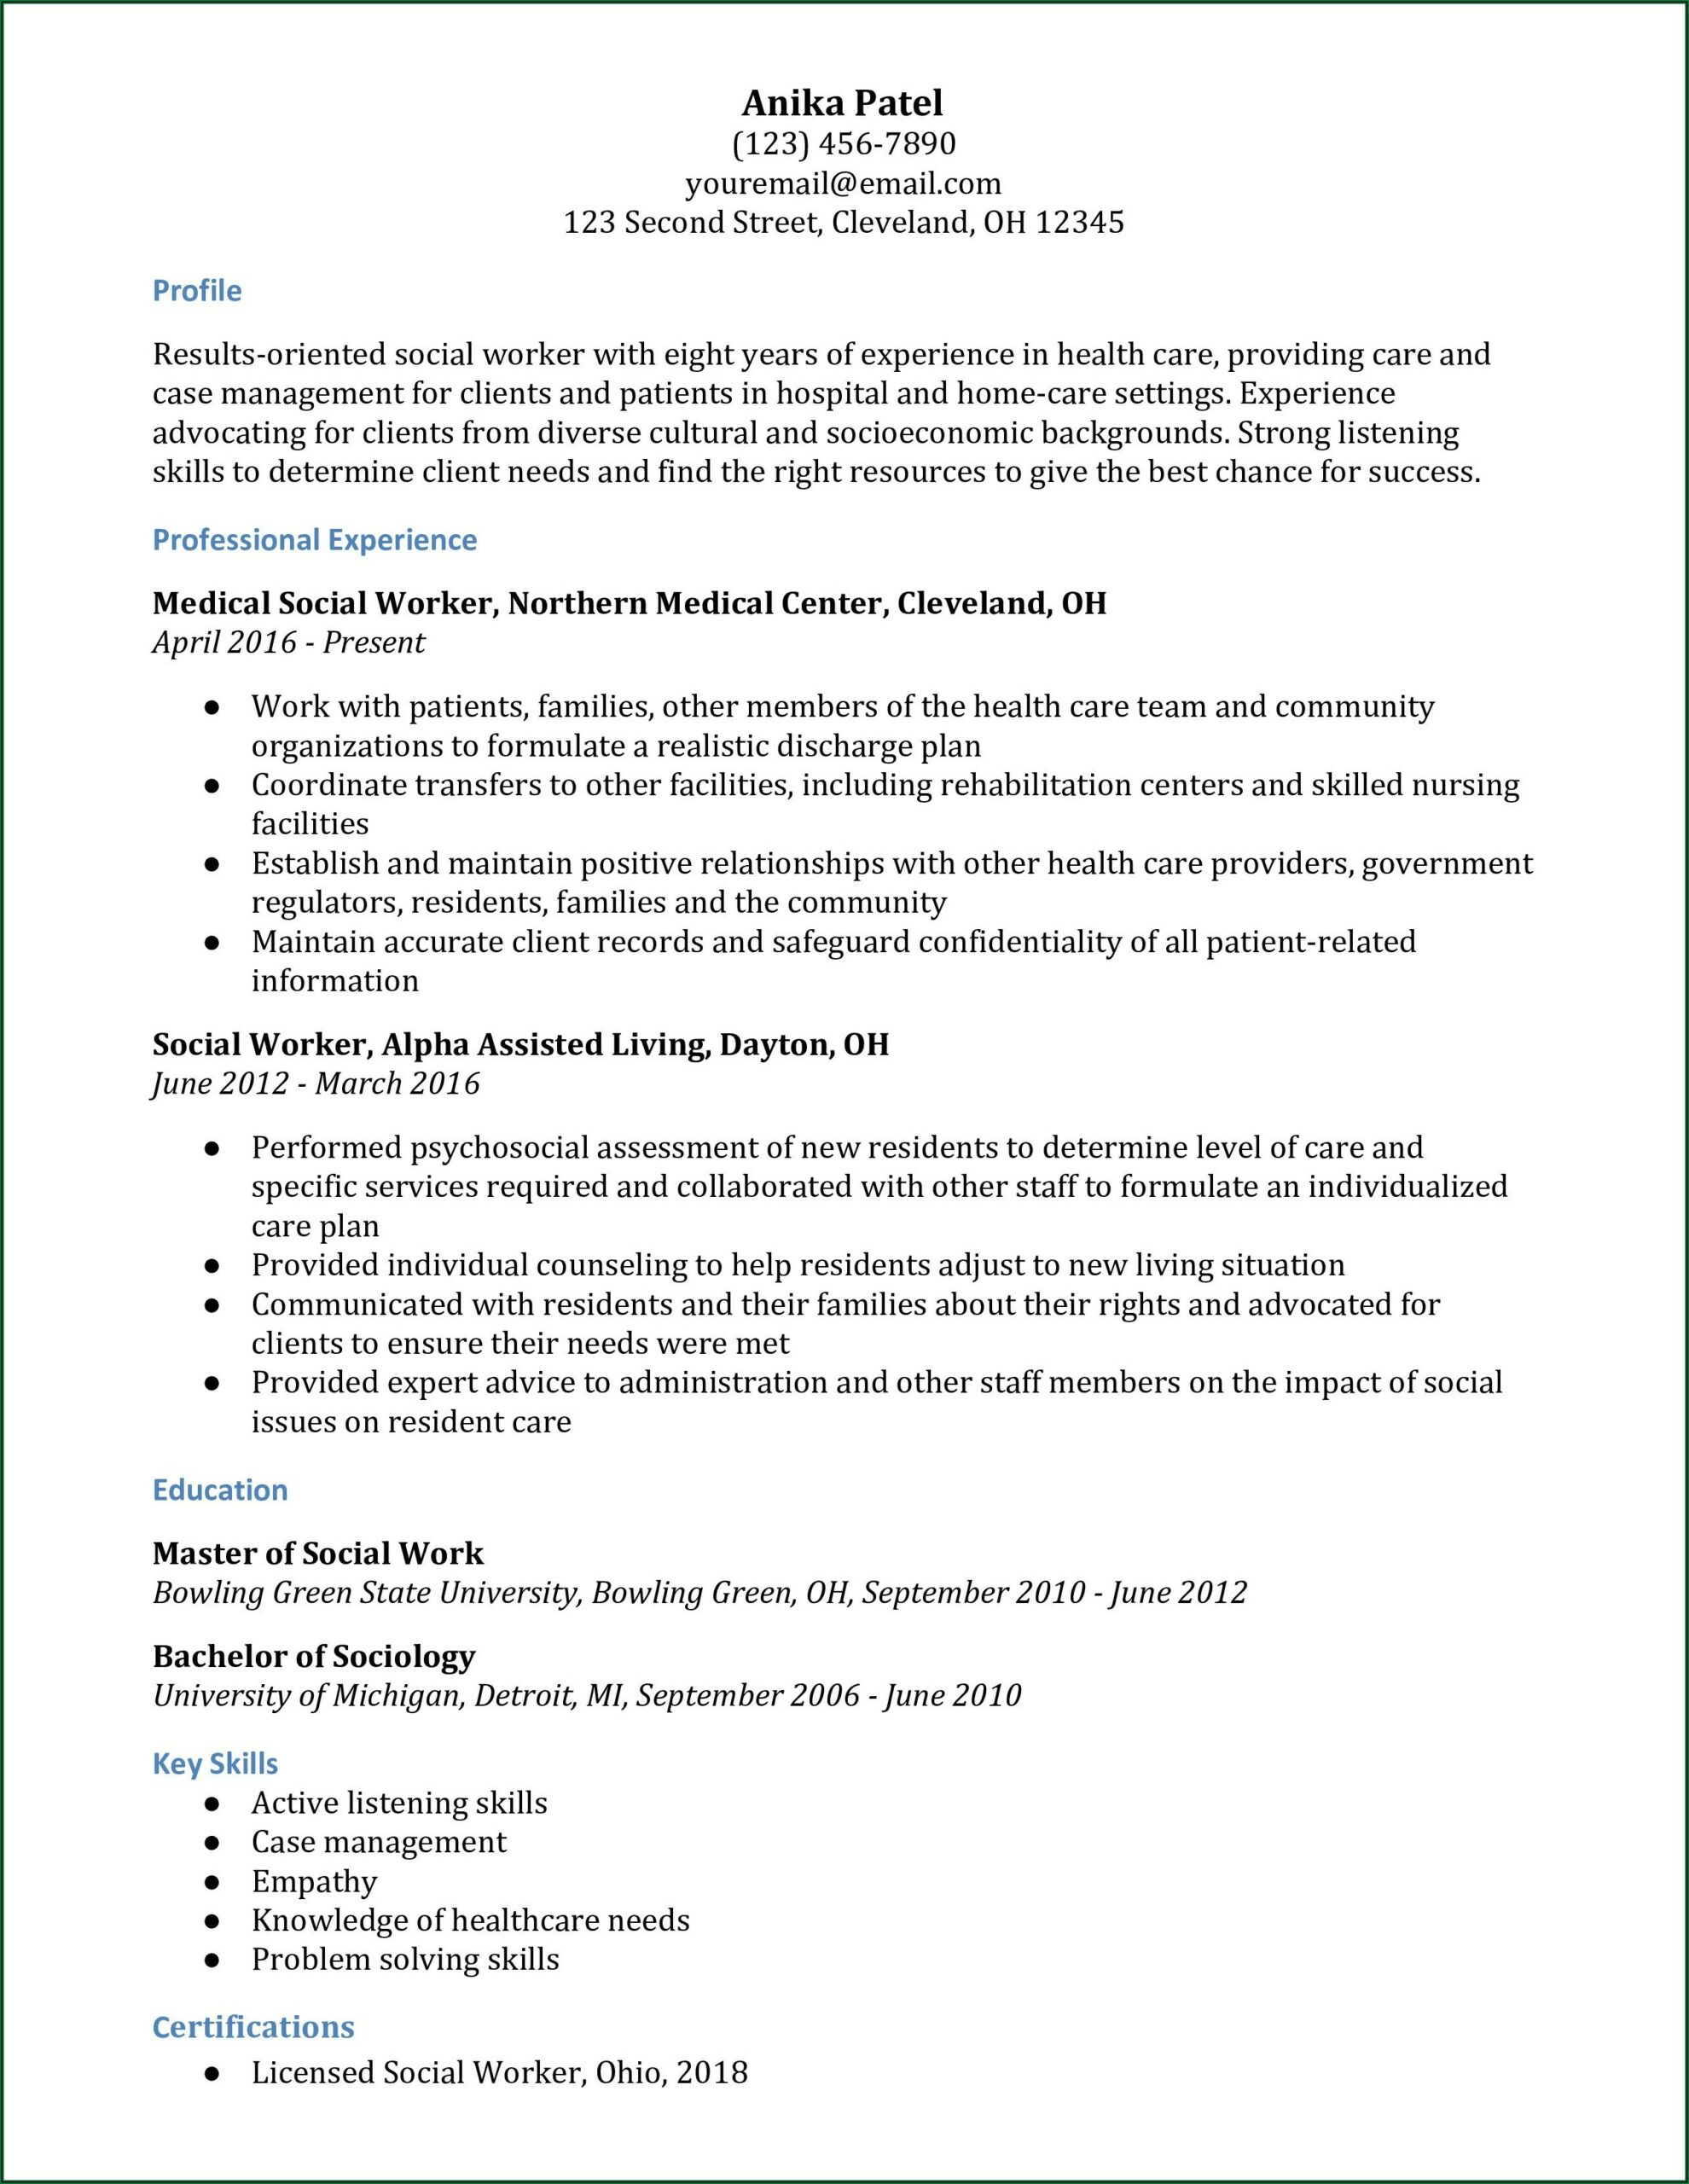 Examples Of Professional Resumes For Social Workers